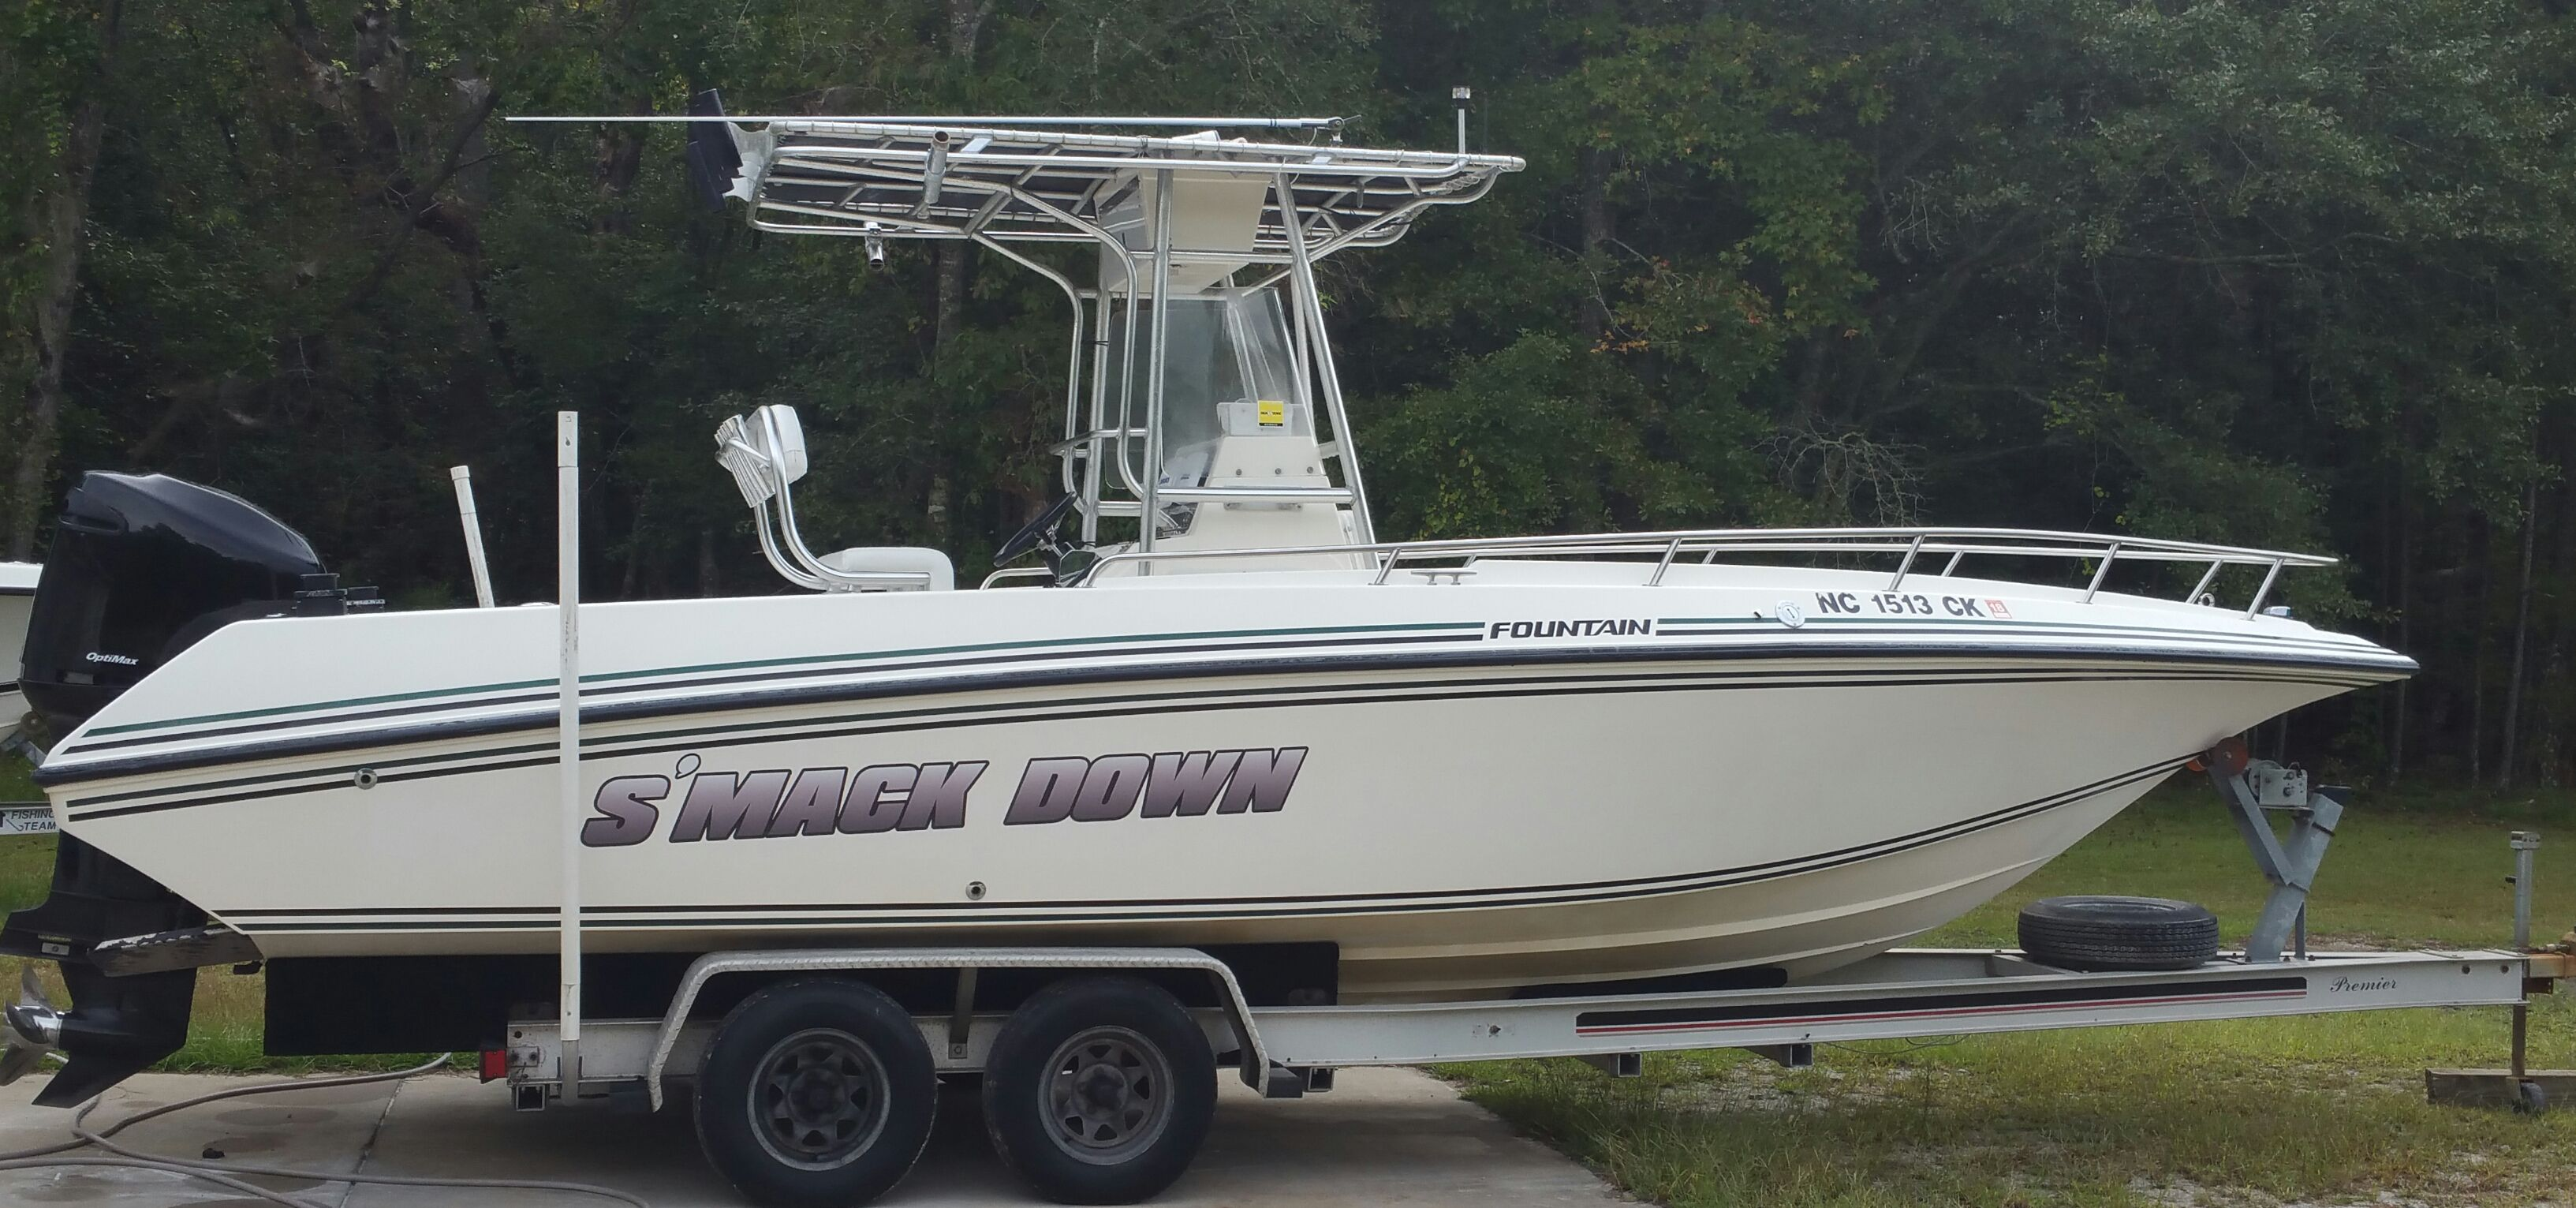 Used 1996 Fountain 25 Center Console New Bern Nc 28560 Boattrader Com Center Console Used Boats Boat